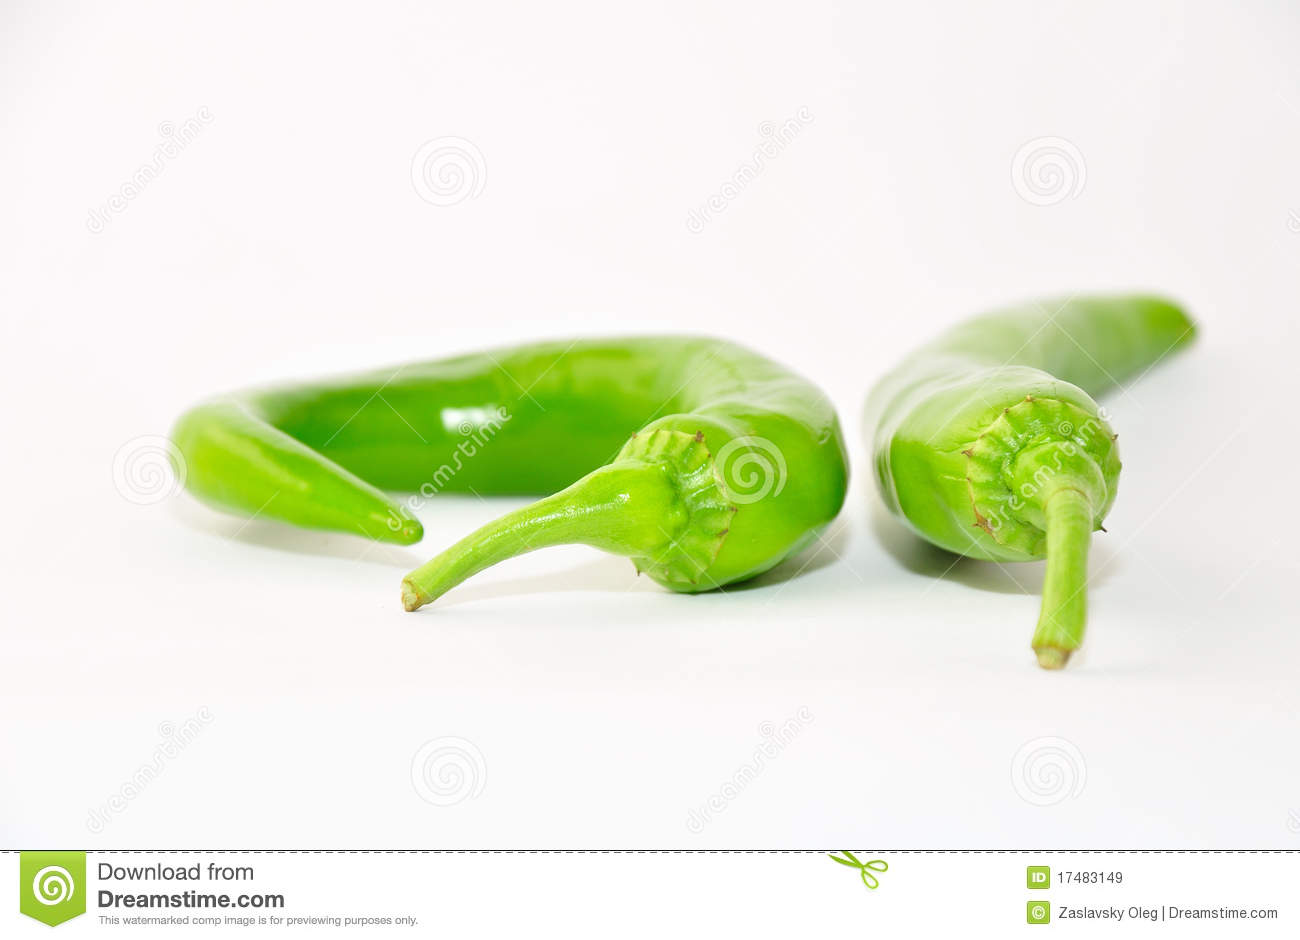 Green Hot Pepper. Royalty Free Stock Images - Image: 17483149